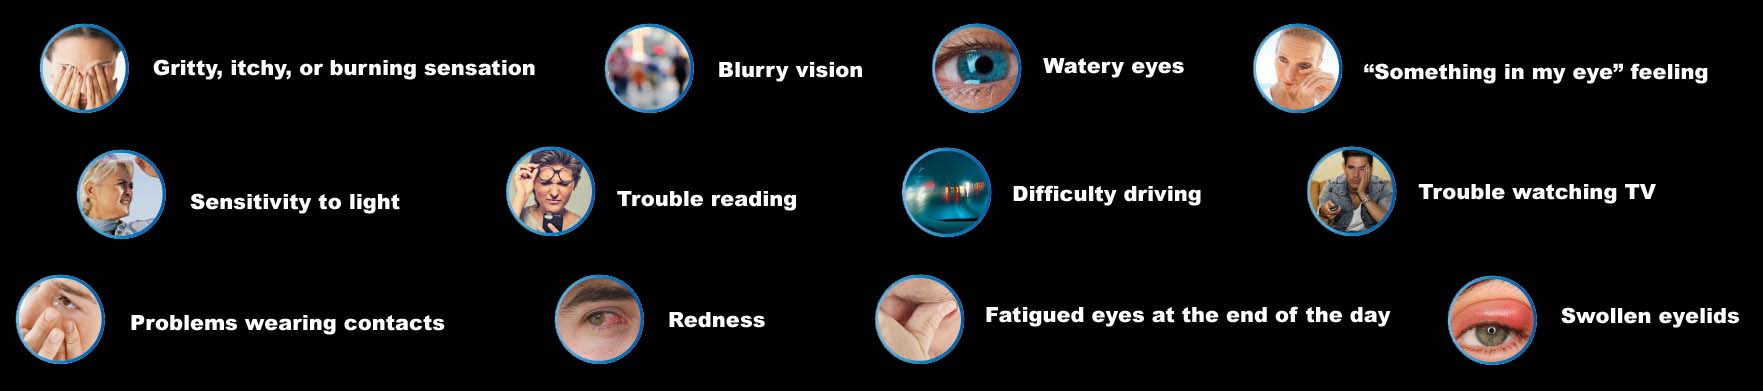 Symptoms of dry eyes